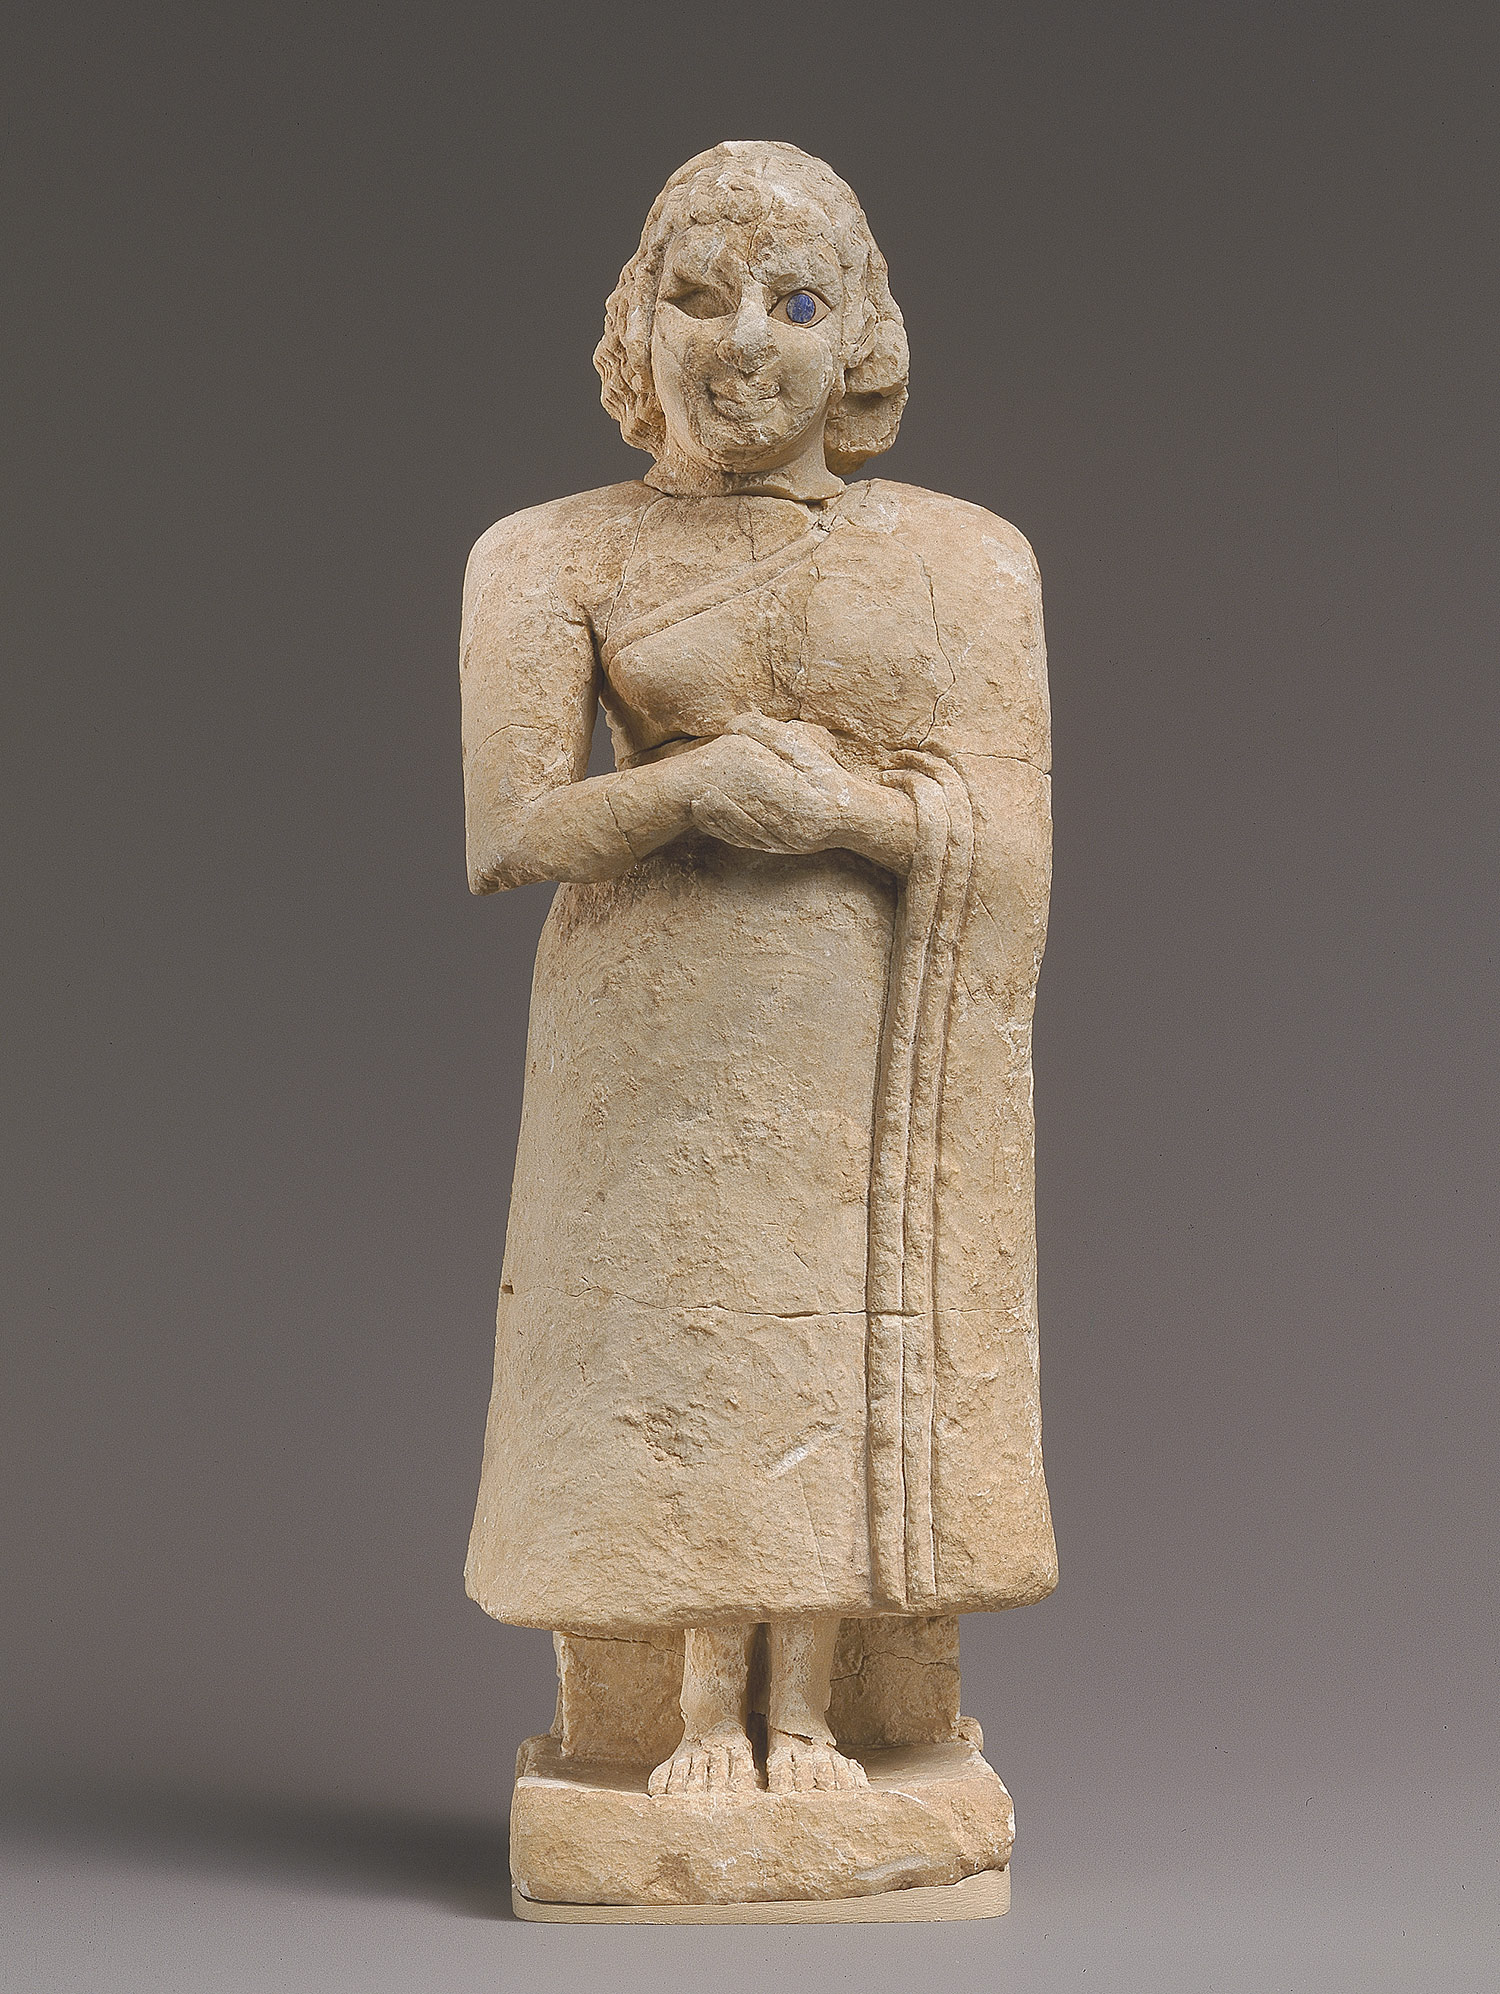 Early Dynastic Sculpture, 2900–2350 B.C. | Thematic Essay ...